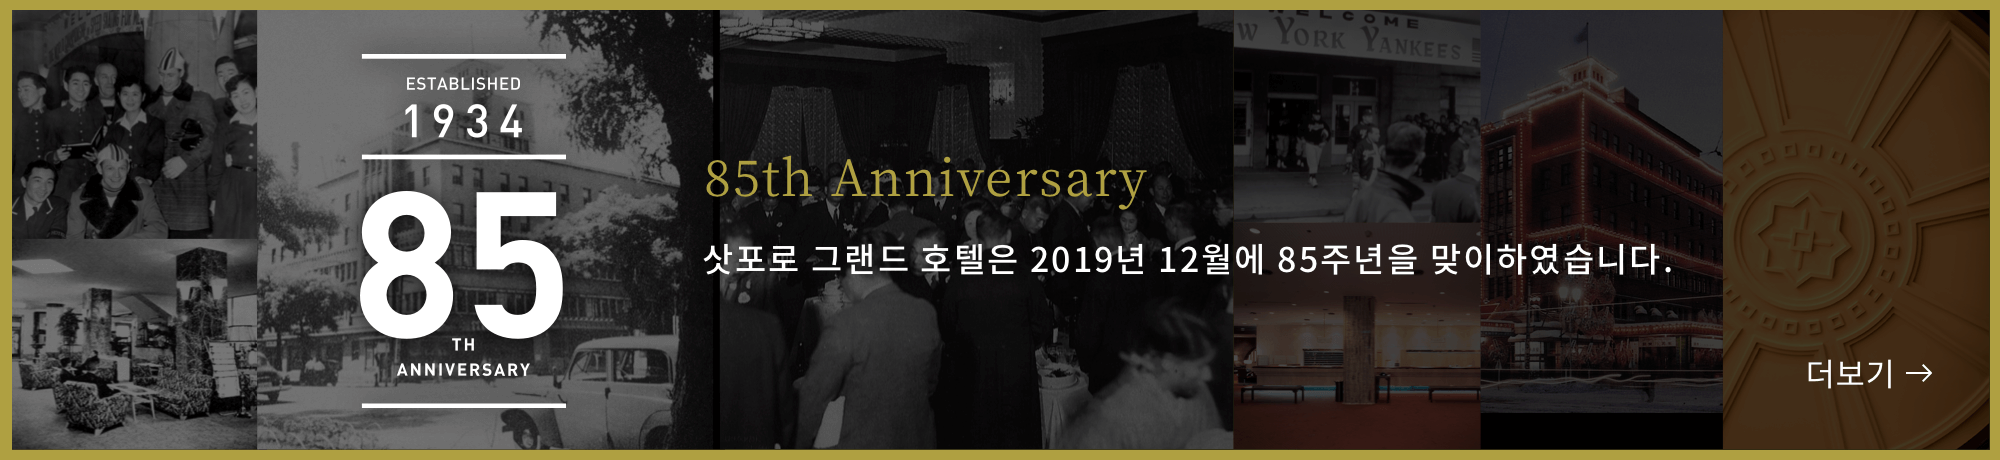 ESTABLISHED 1934 85TH ANNIVERSARY 85th Anniversary Plan December 2019 marks the 85th anniversary of the Sapporo Grand Hotel. View more